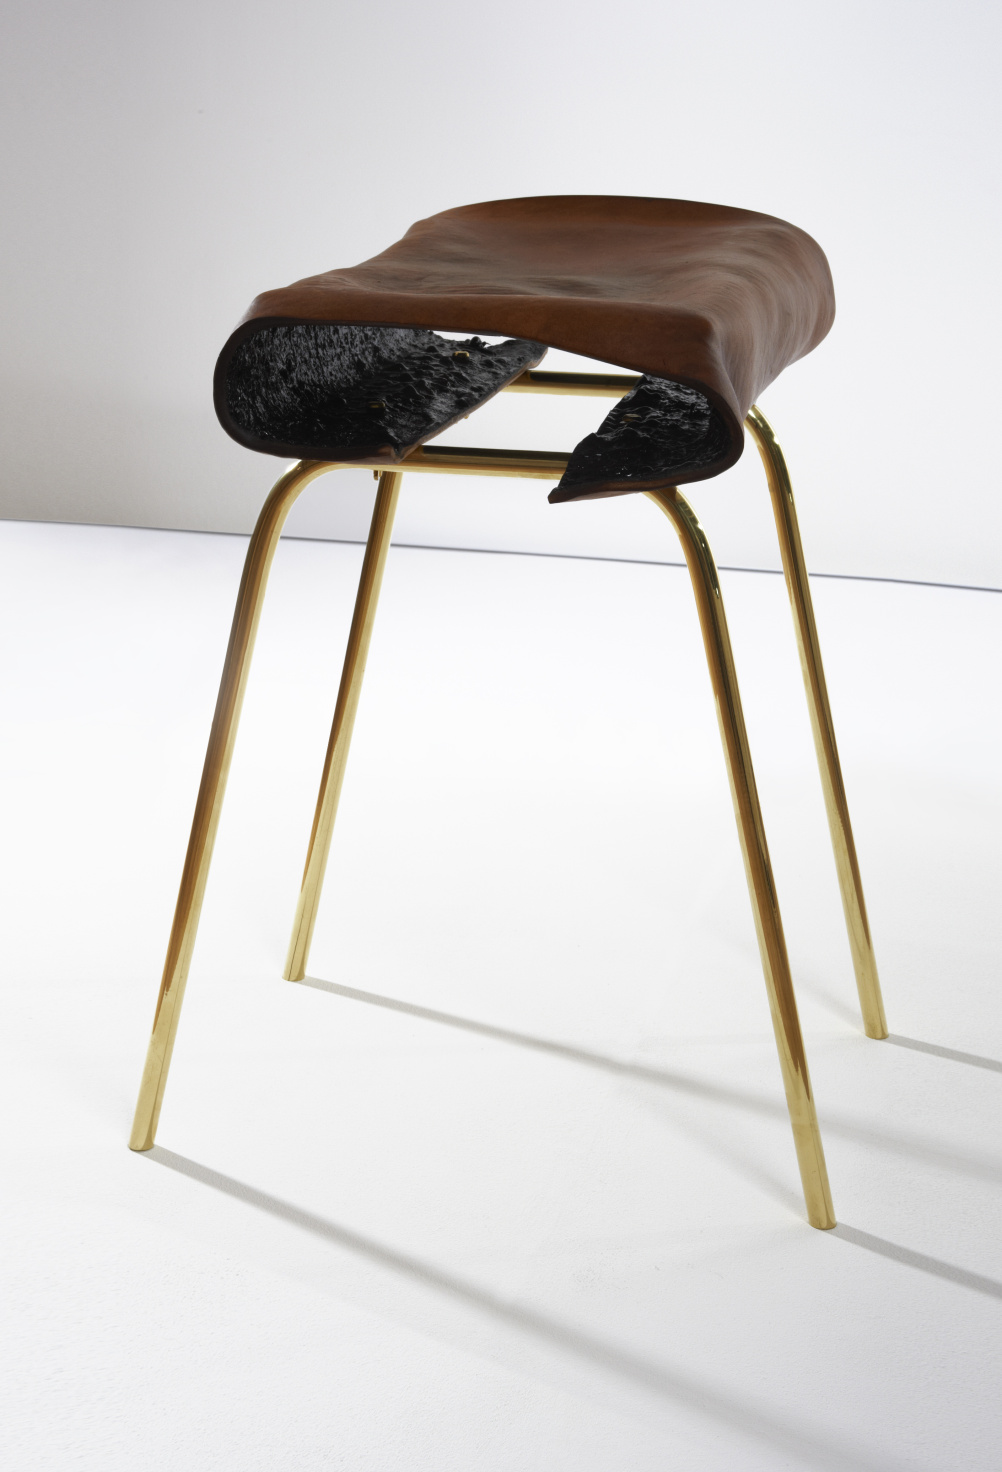 Geno Stool, by Simon Hasan, 2011